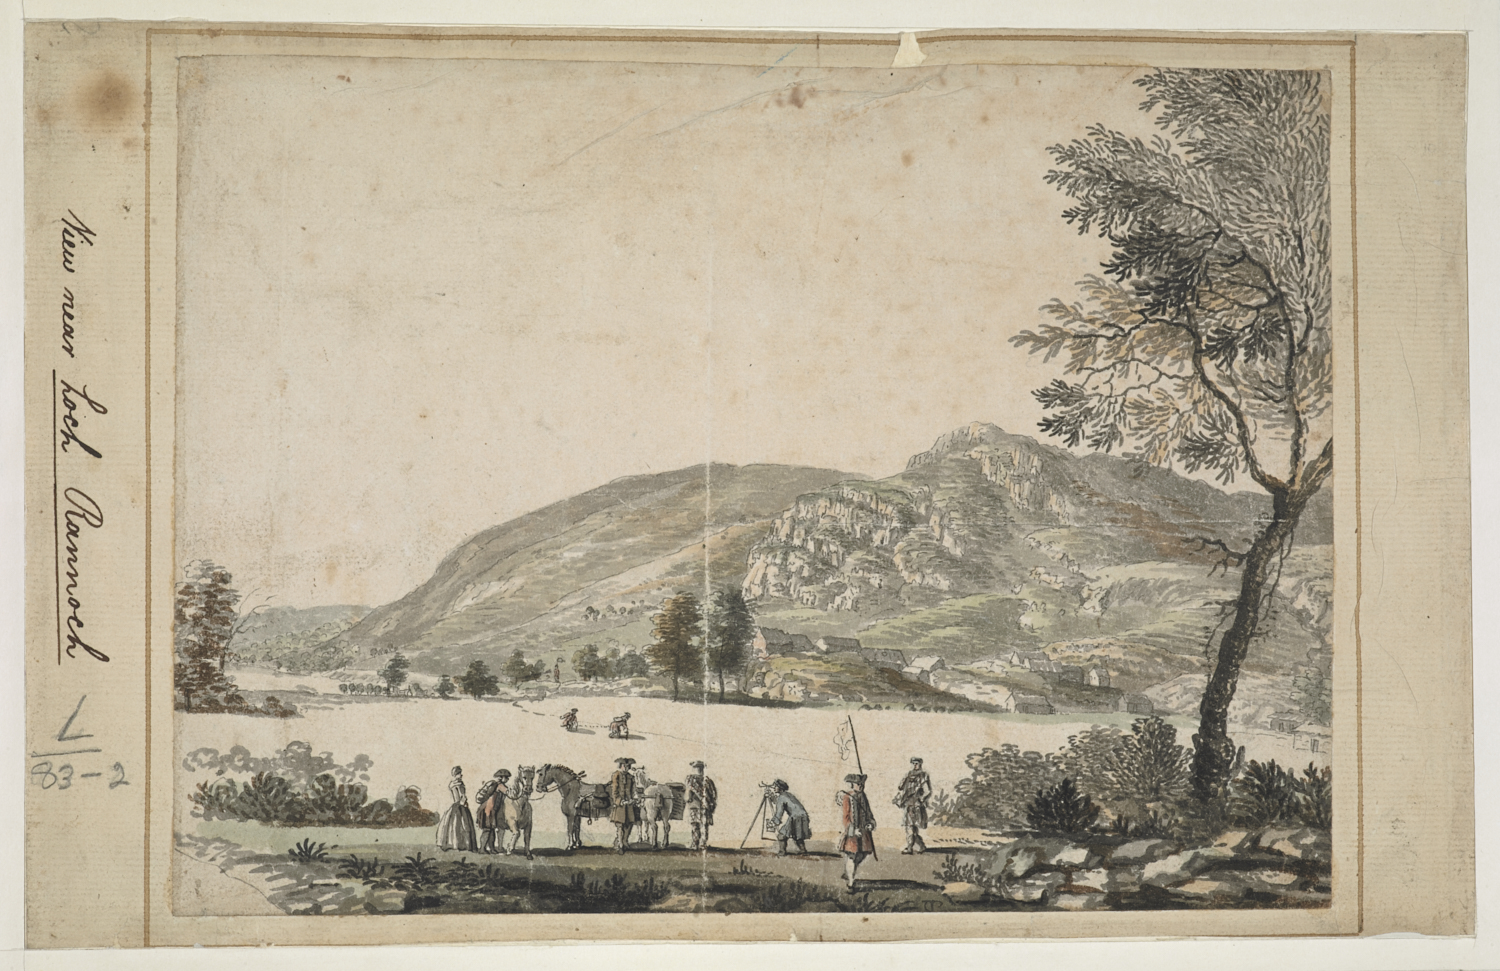 igures surveying the eastern end of Loch Rannoch as part of the Military Survey of northern Britain; one figure using a circumfrentor; another holding a flag; trees throughout the scene; hills in the distance.